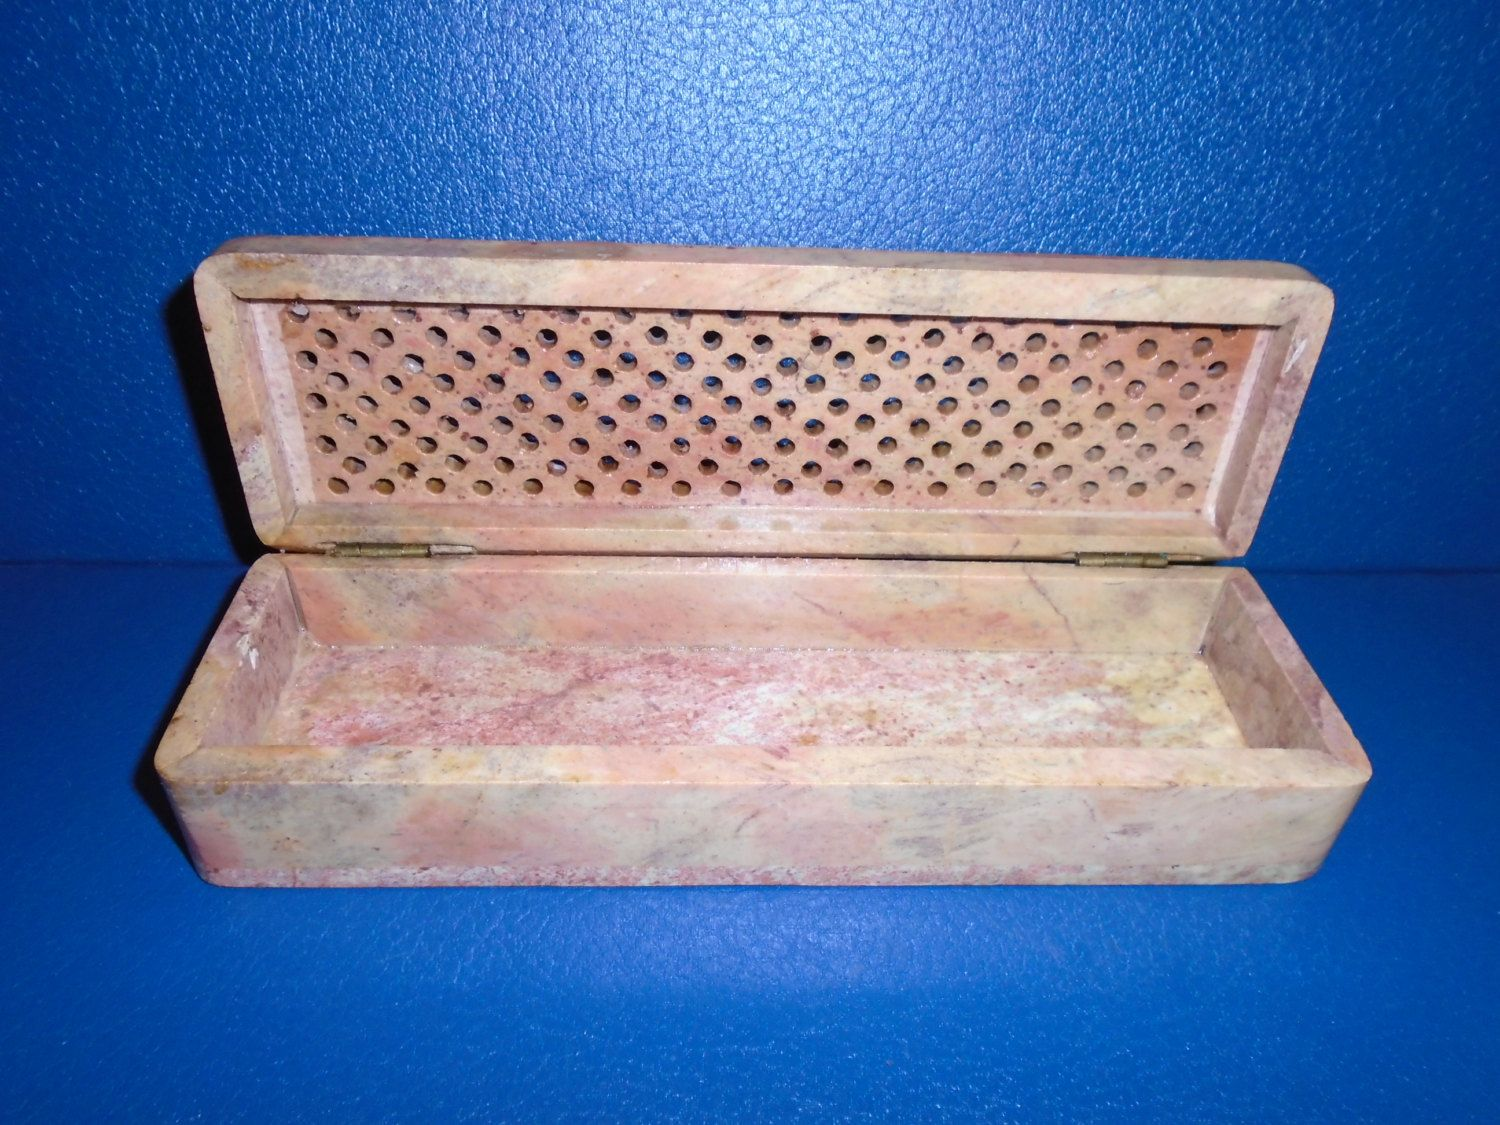 soapstone carved box / soapstone carving / soapstone box / trinket box / bin / storage / box / Carved / Hand carved / by Montyhallsshowcase on Etsy